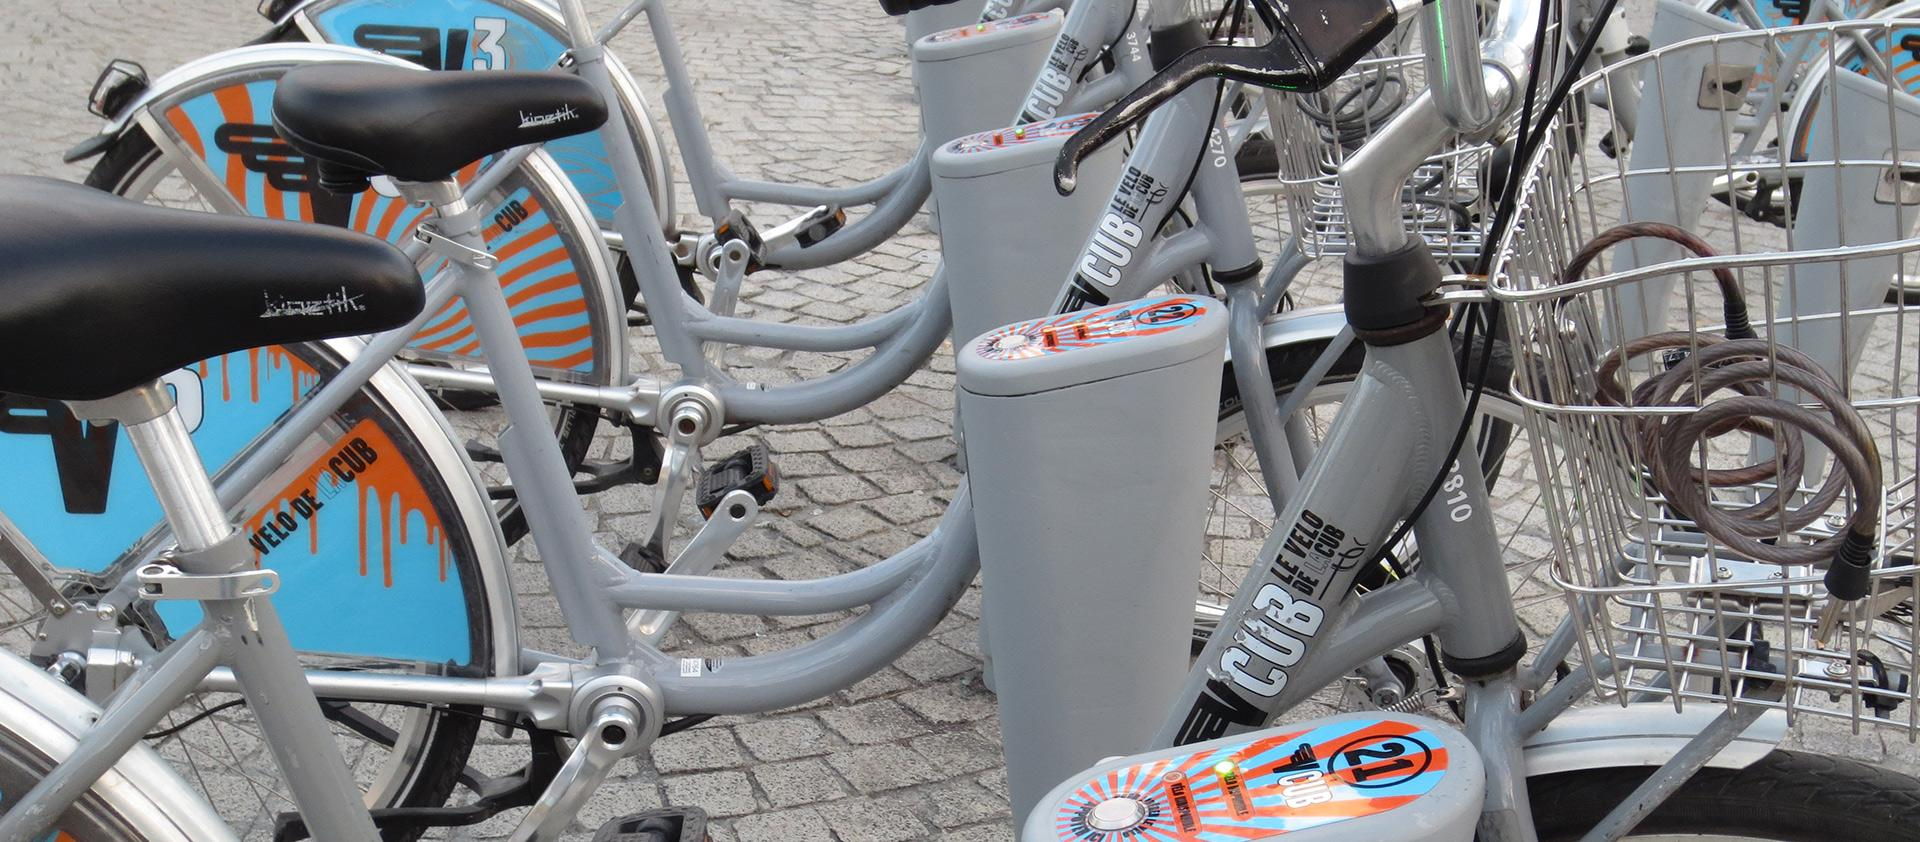 Shifting a bicycle sharing scheme into NFC: the VCUB Mobile project